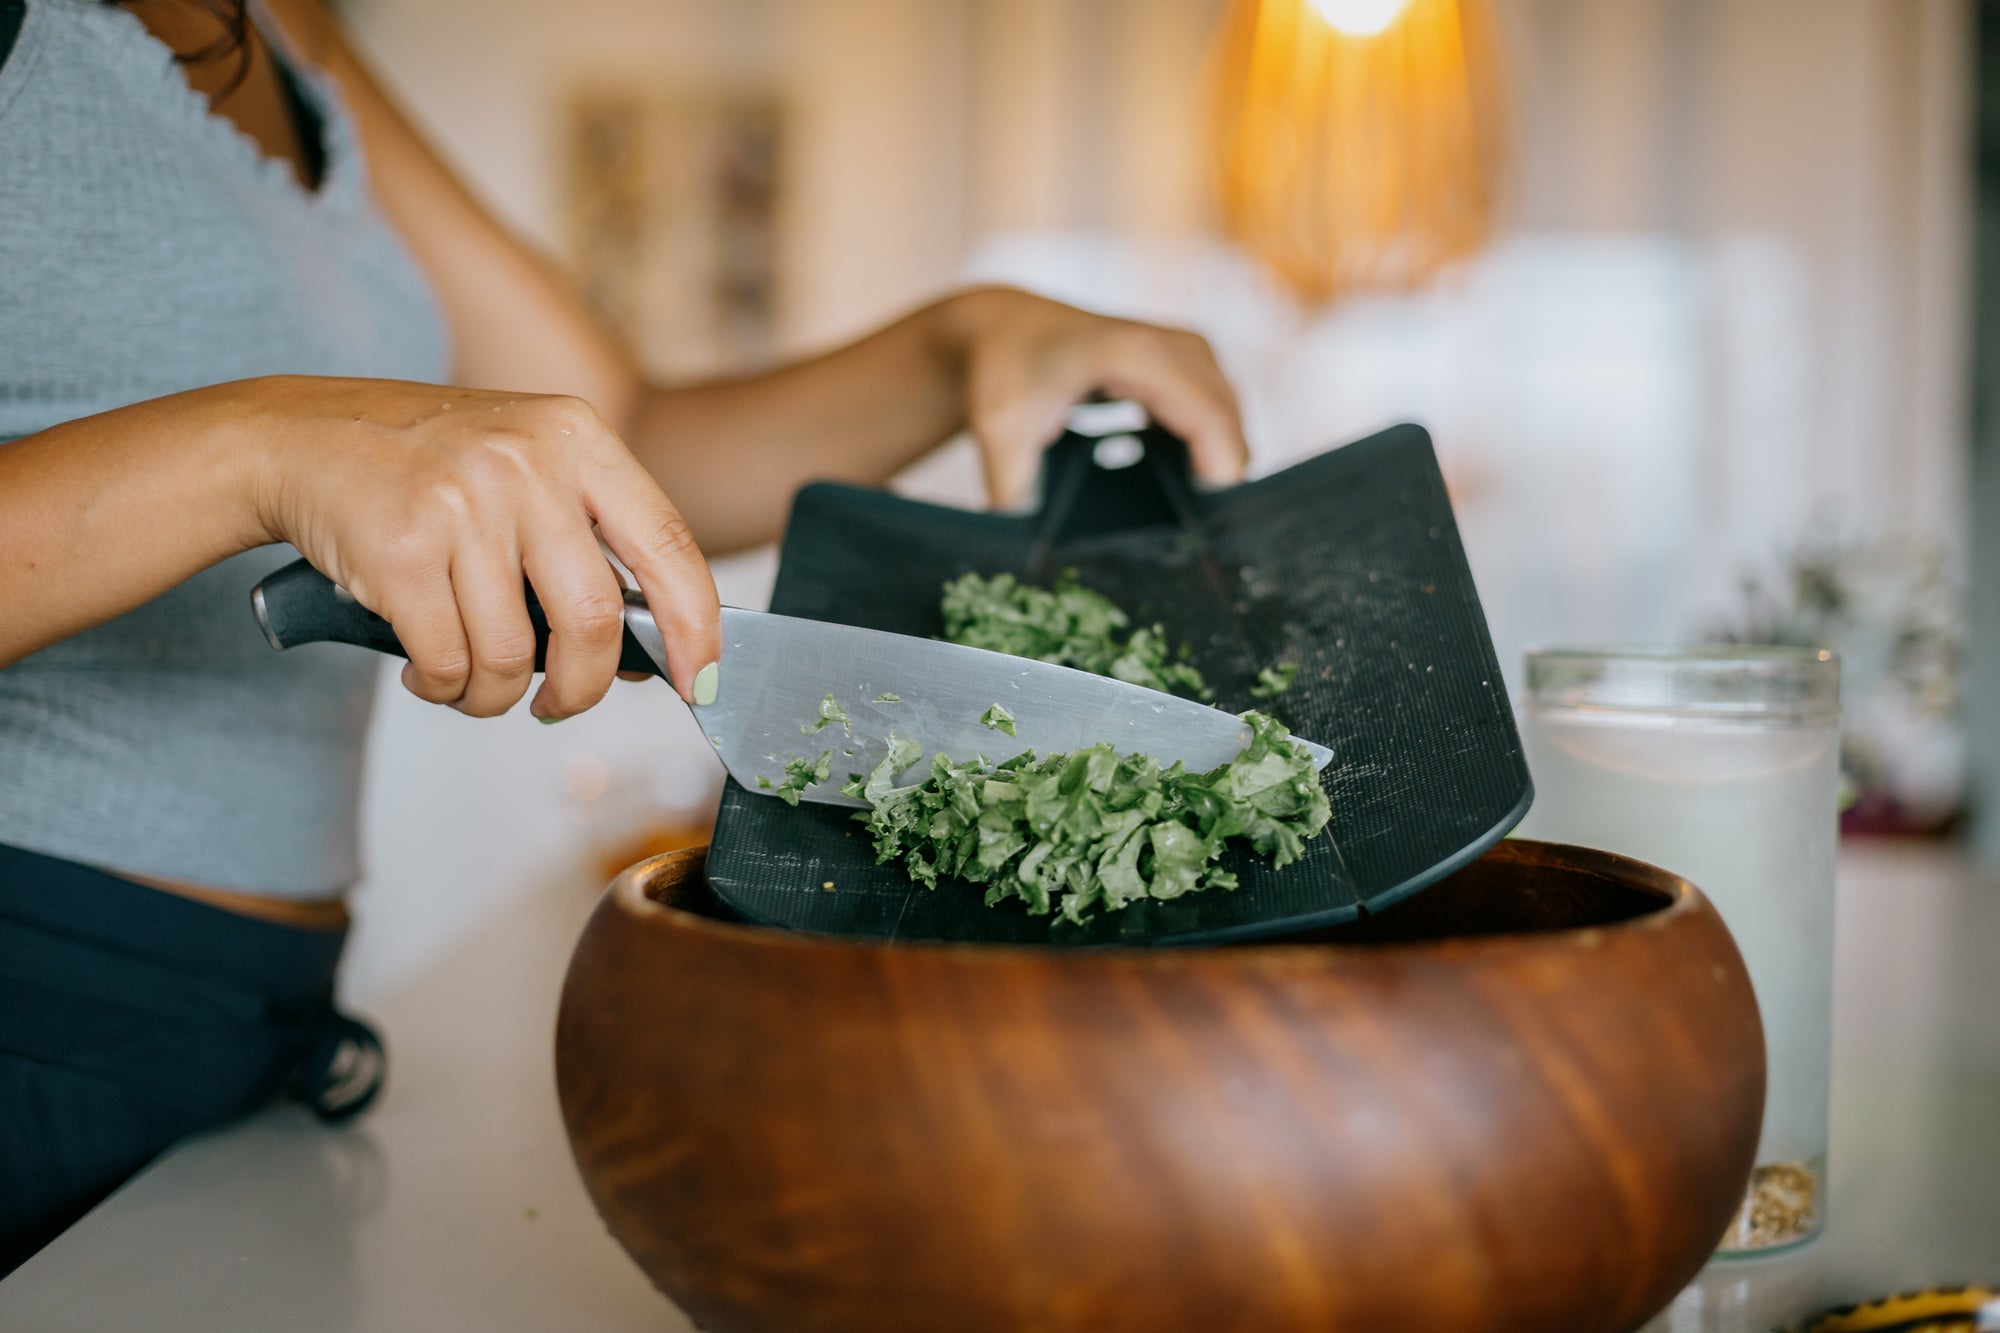 Chef Preparing Healthy Food Manchester | Remedy kitchen Healthy Restaurant Manchester Meal Prep Plans Luxury Meal Prep Manchester Meal Prep Delivery Meal Prep Service Manchester Nutritious Meal Prep Balanced Meal Prep